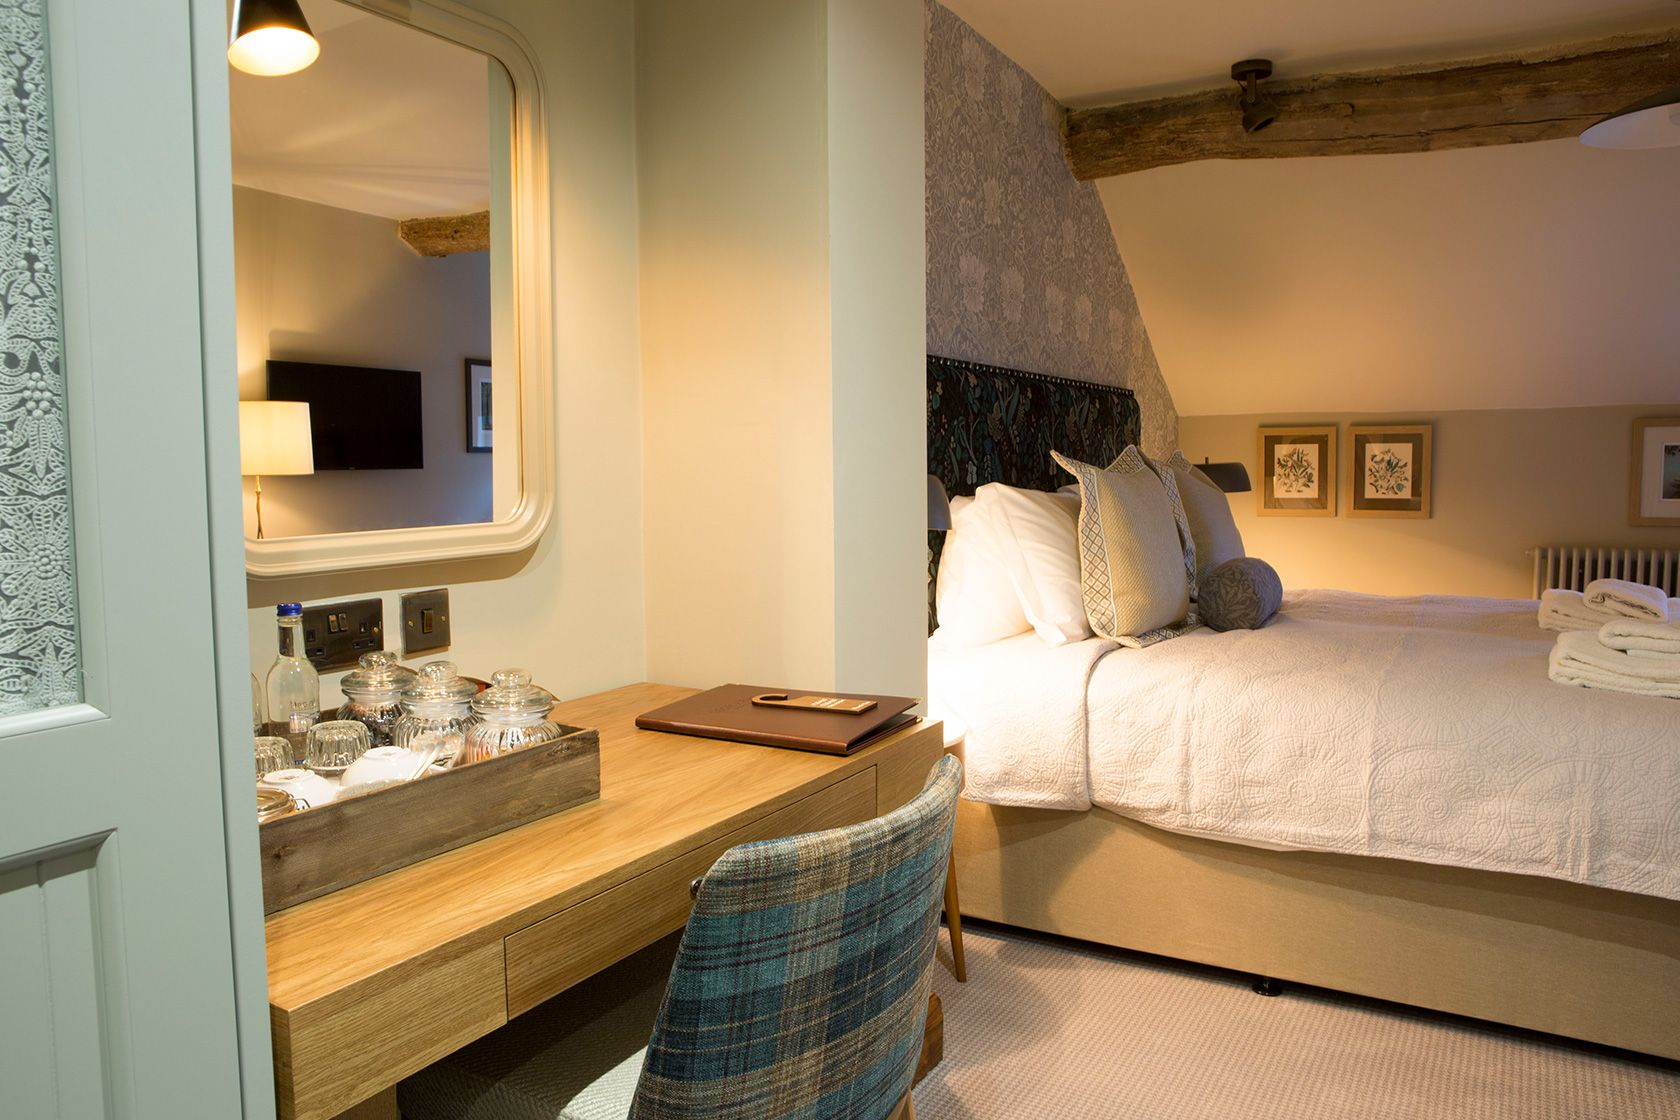 Great amenities and extra room to spread out in our premium bedrooms at the Legh Arms